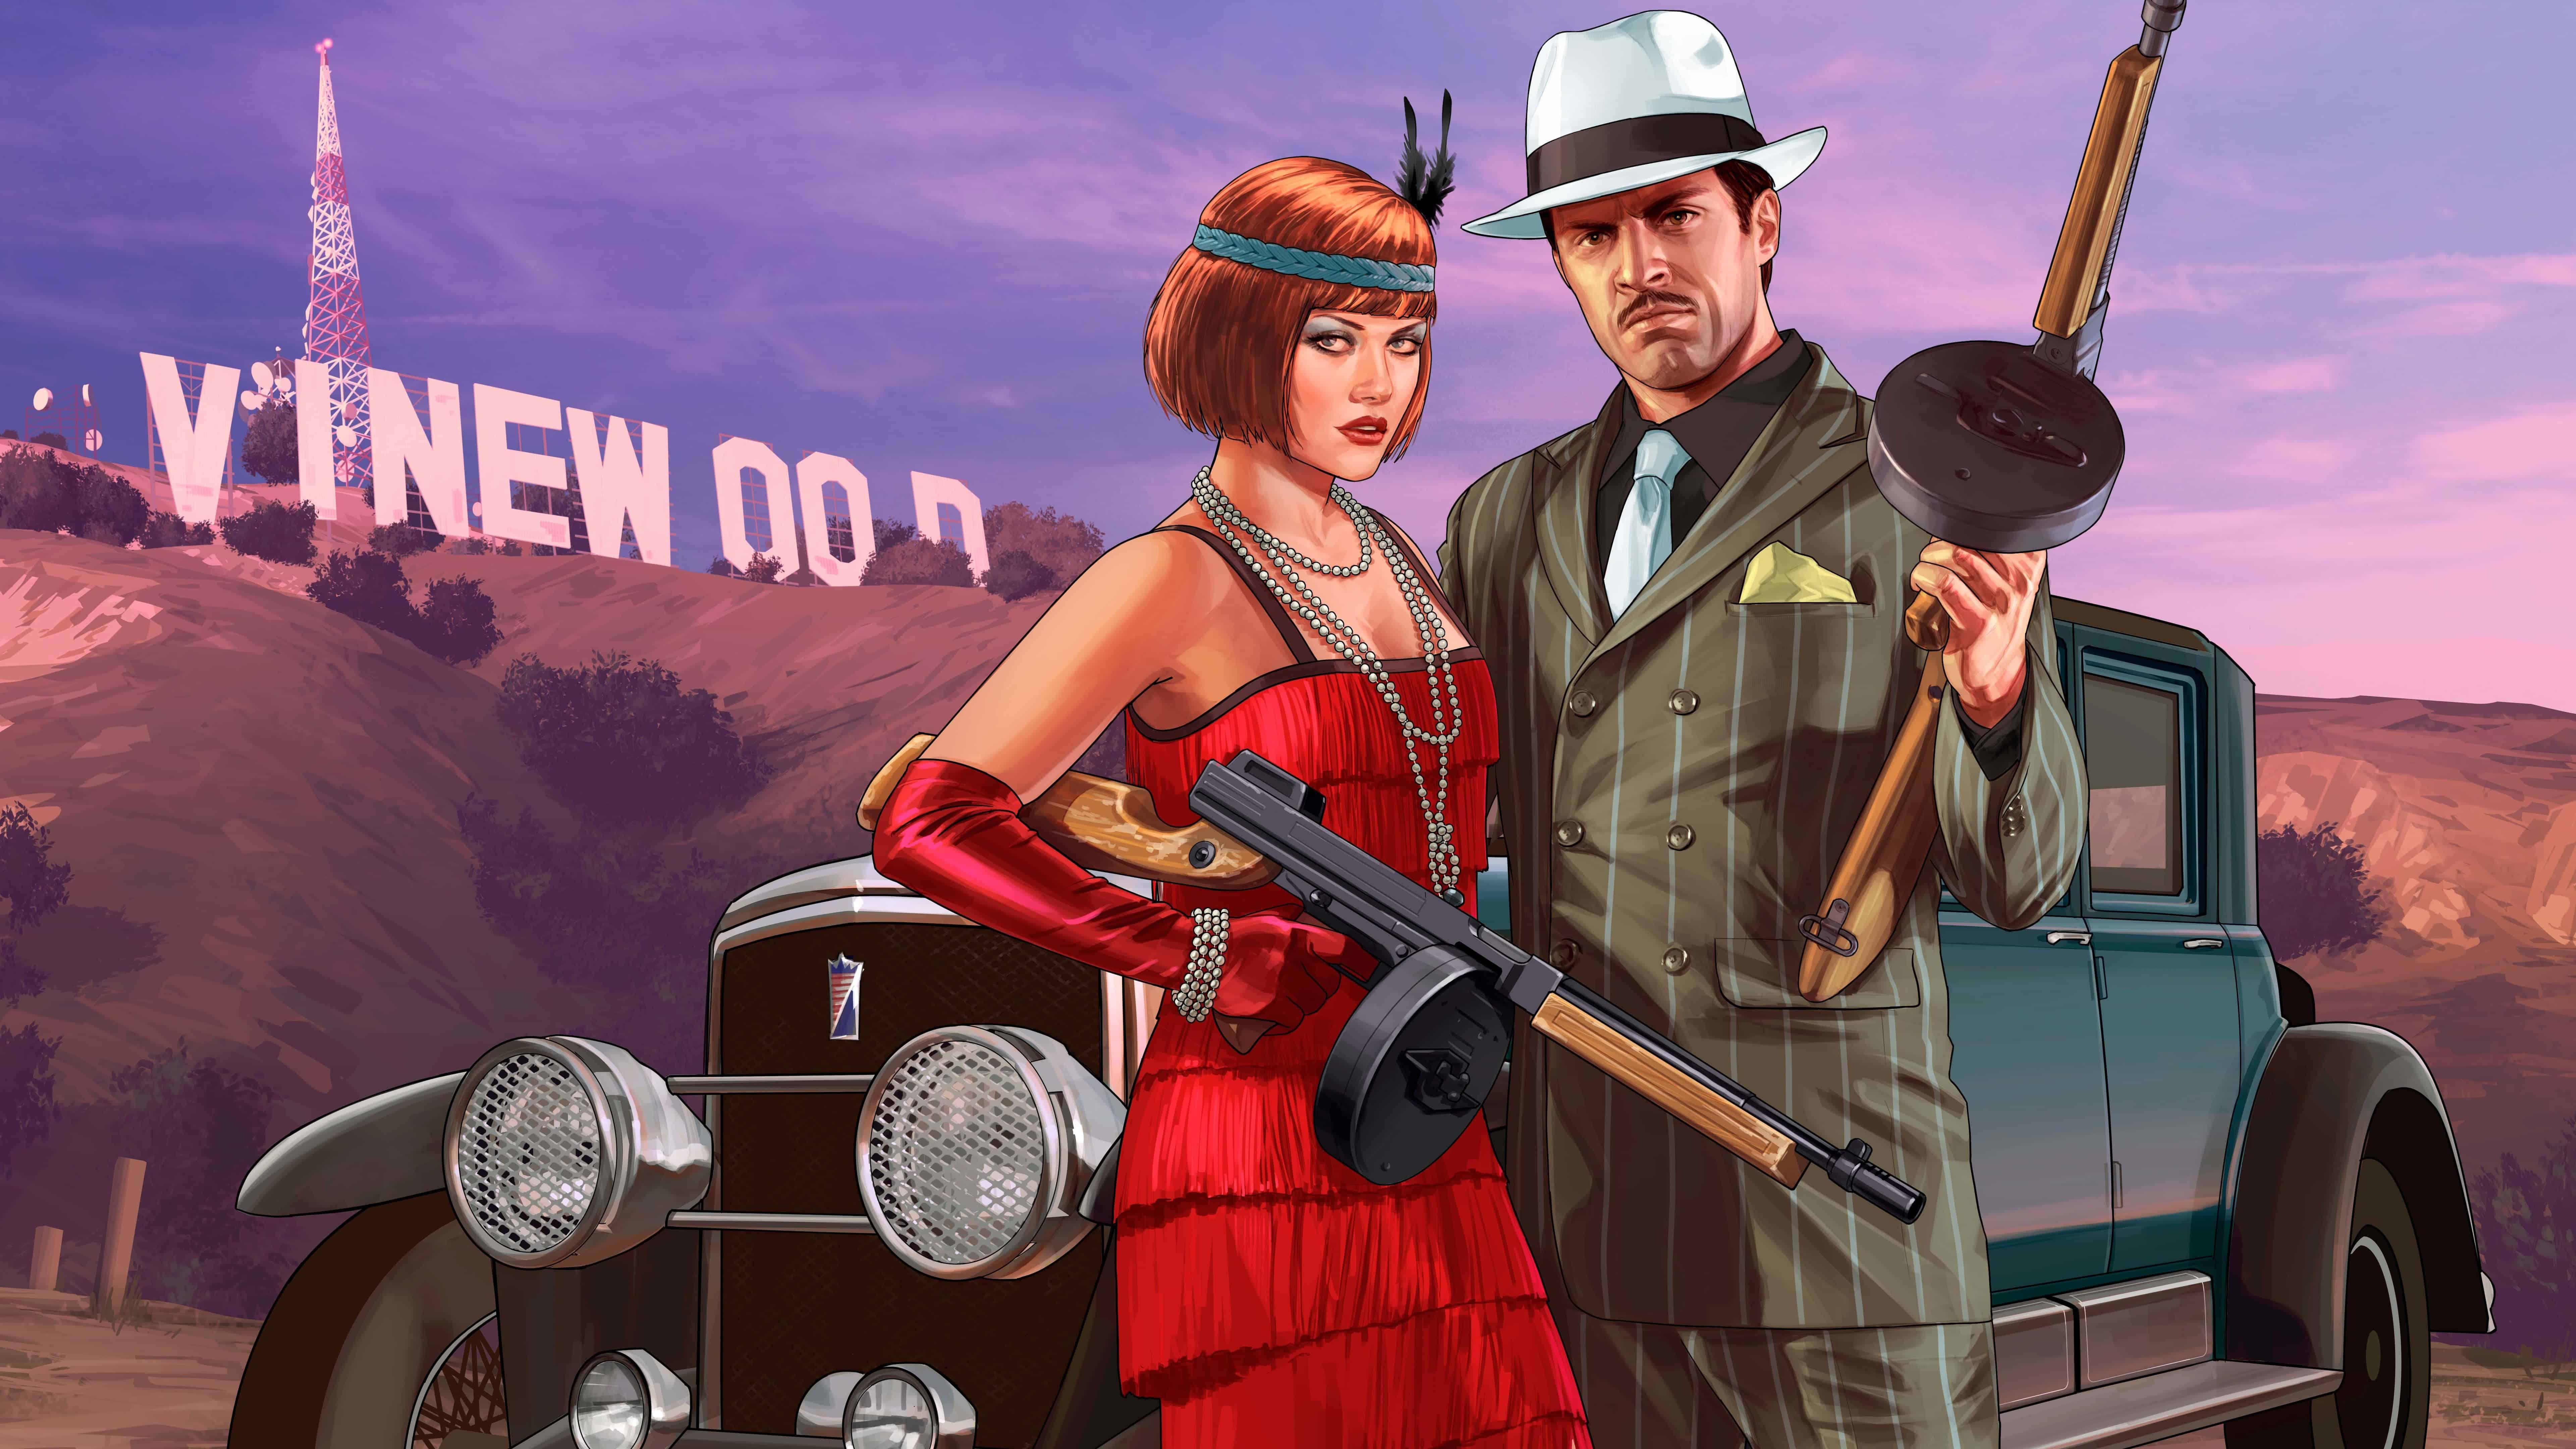 Cars Hd Mobile Wallpapers Grand Theft Auto 5 Mafia Valentine Outfits Uhd 8k